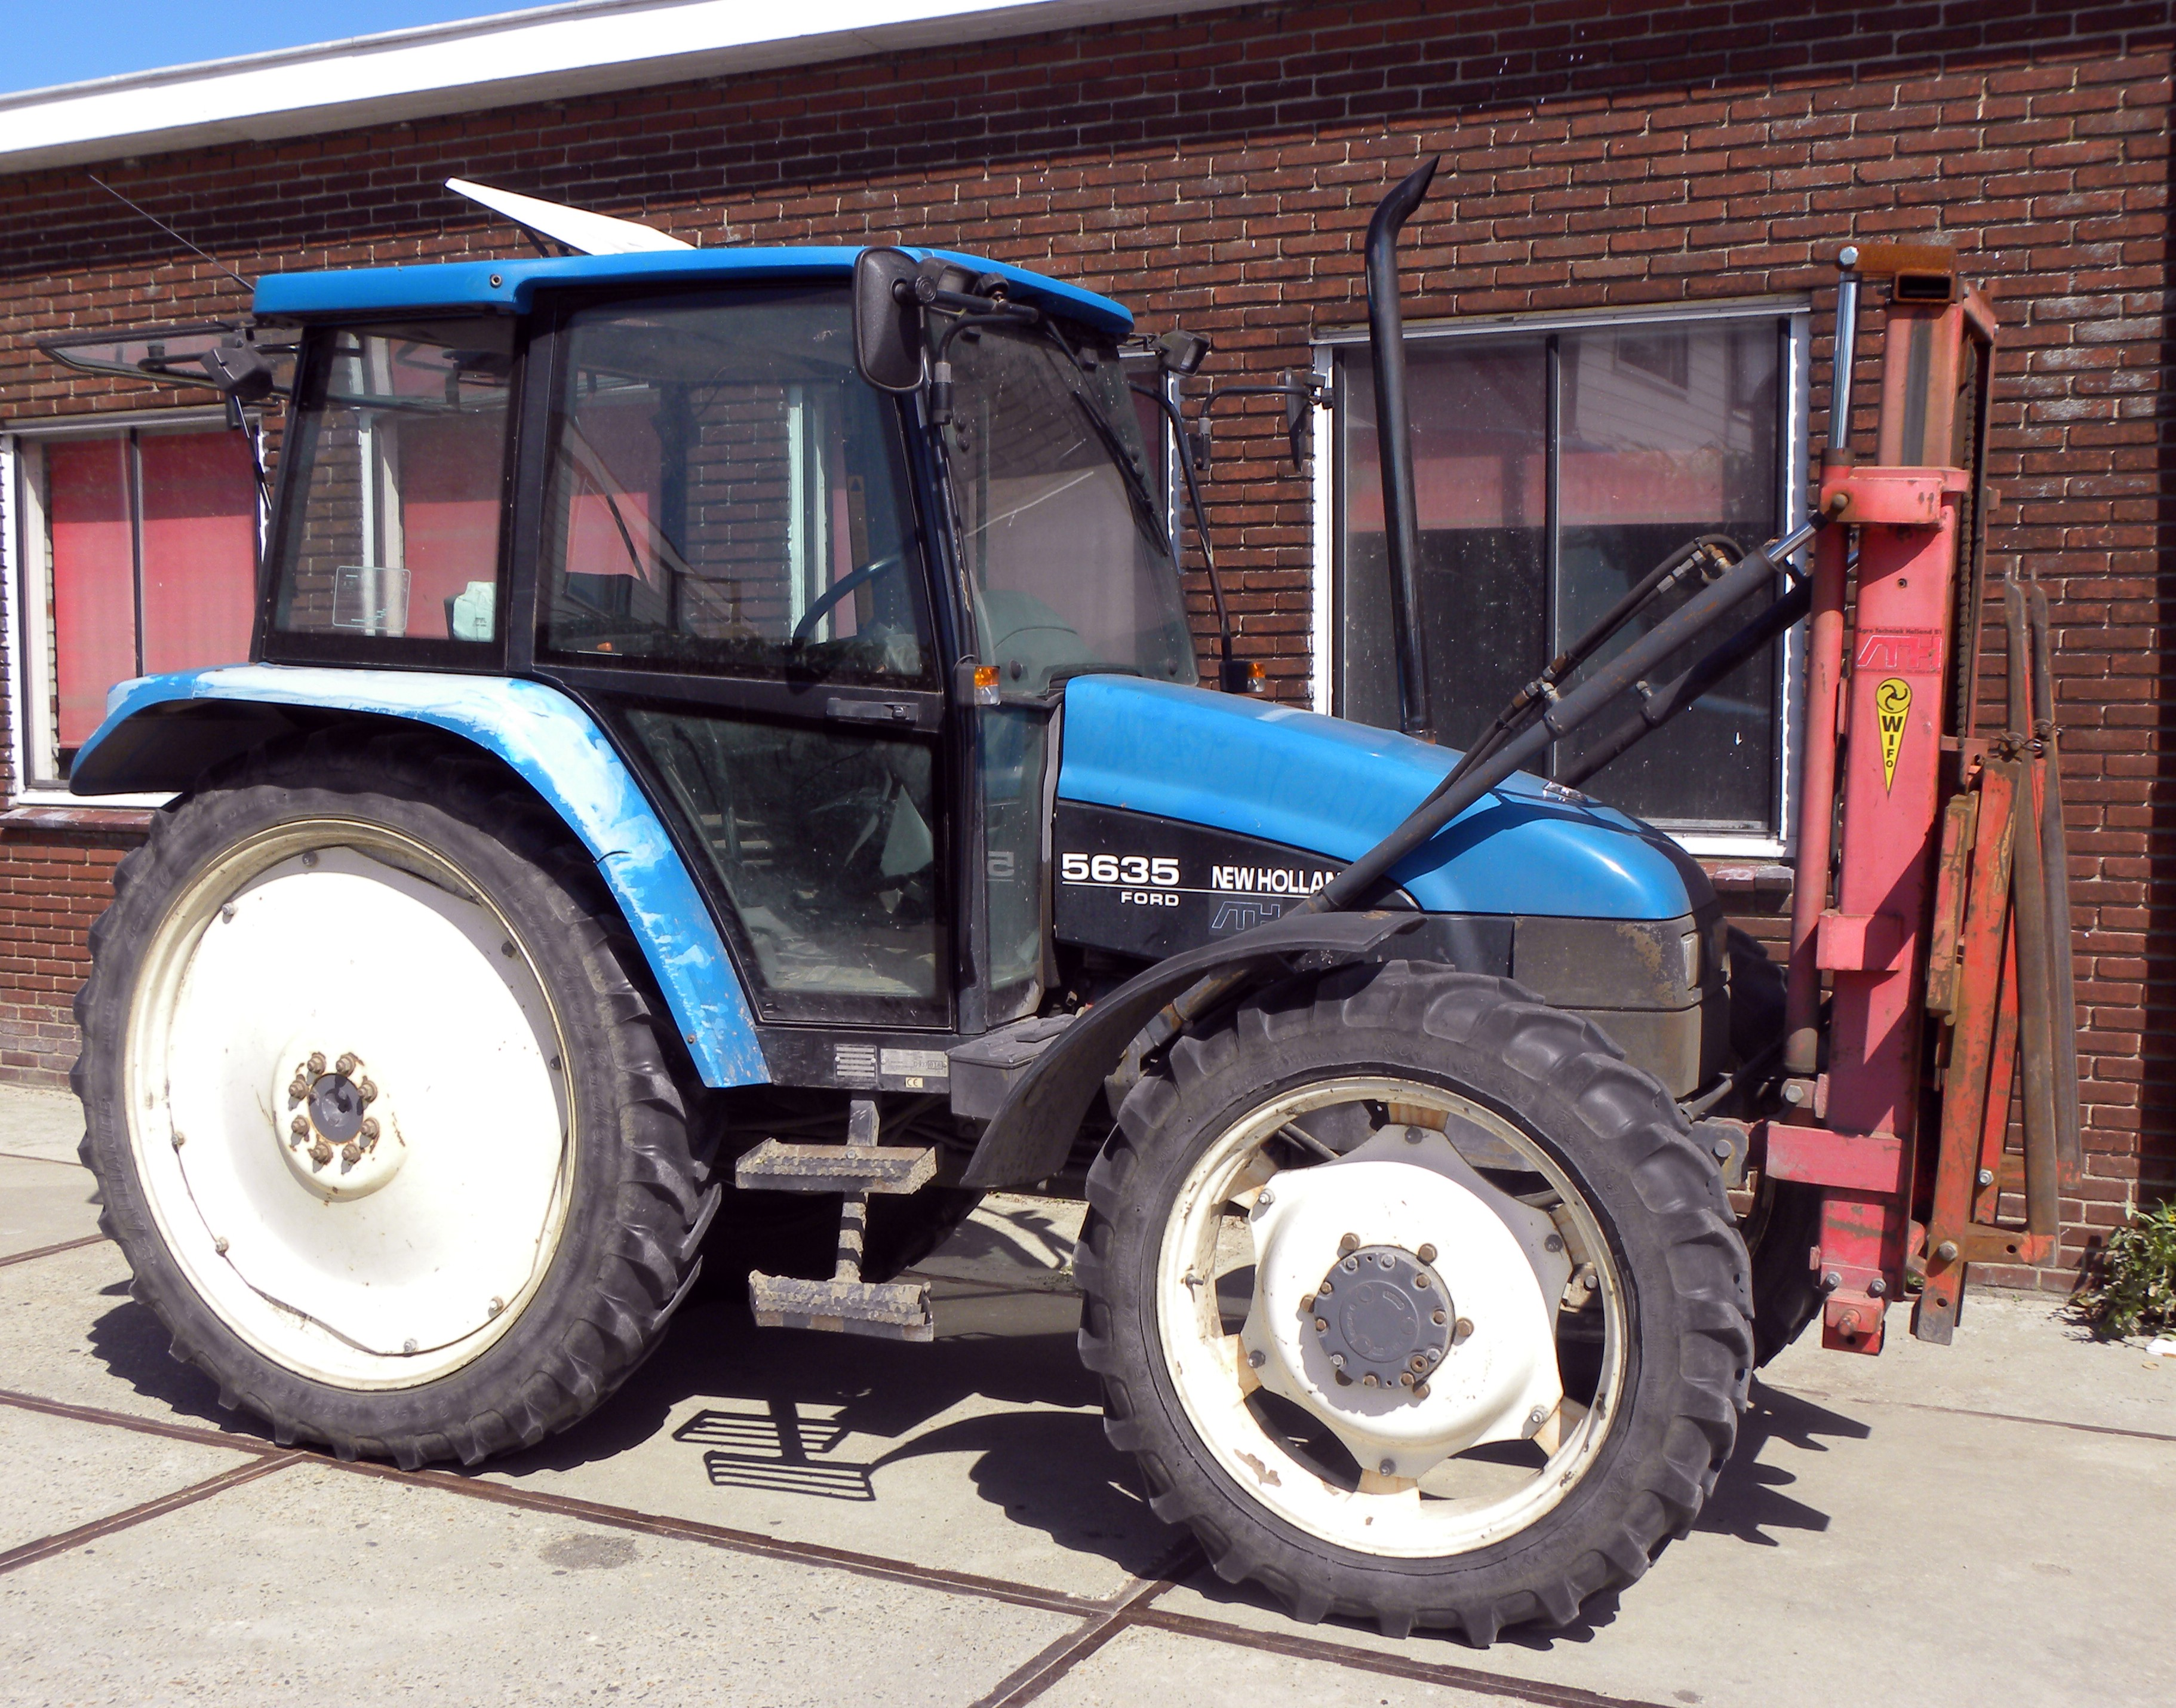 Description New Holland Ford 5635